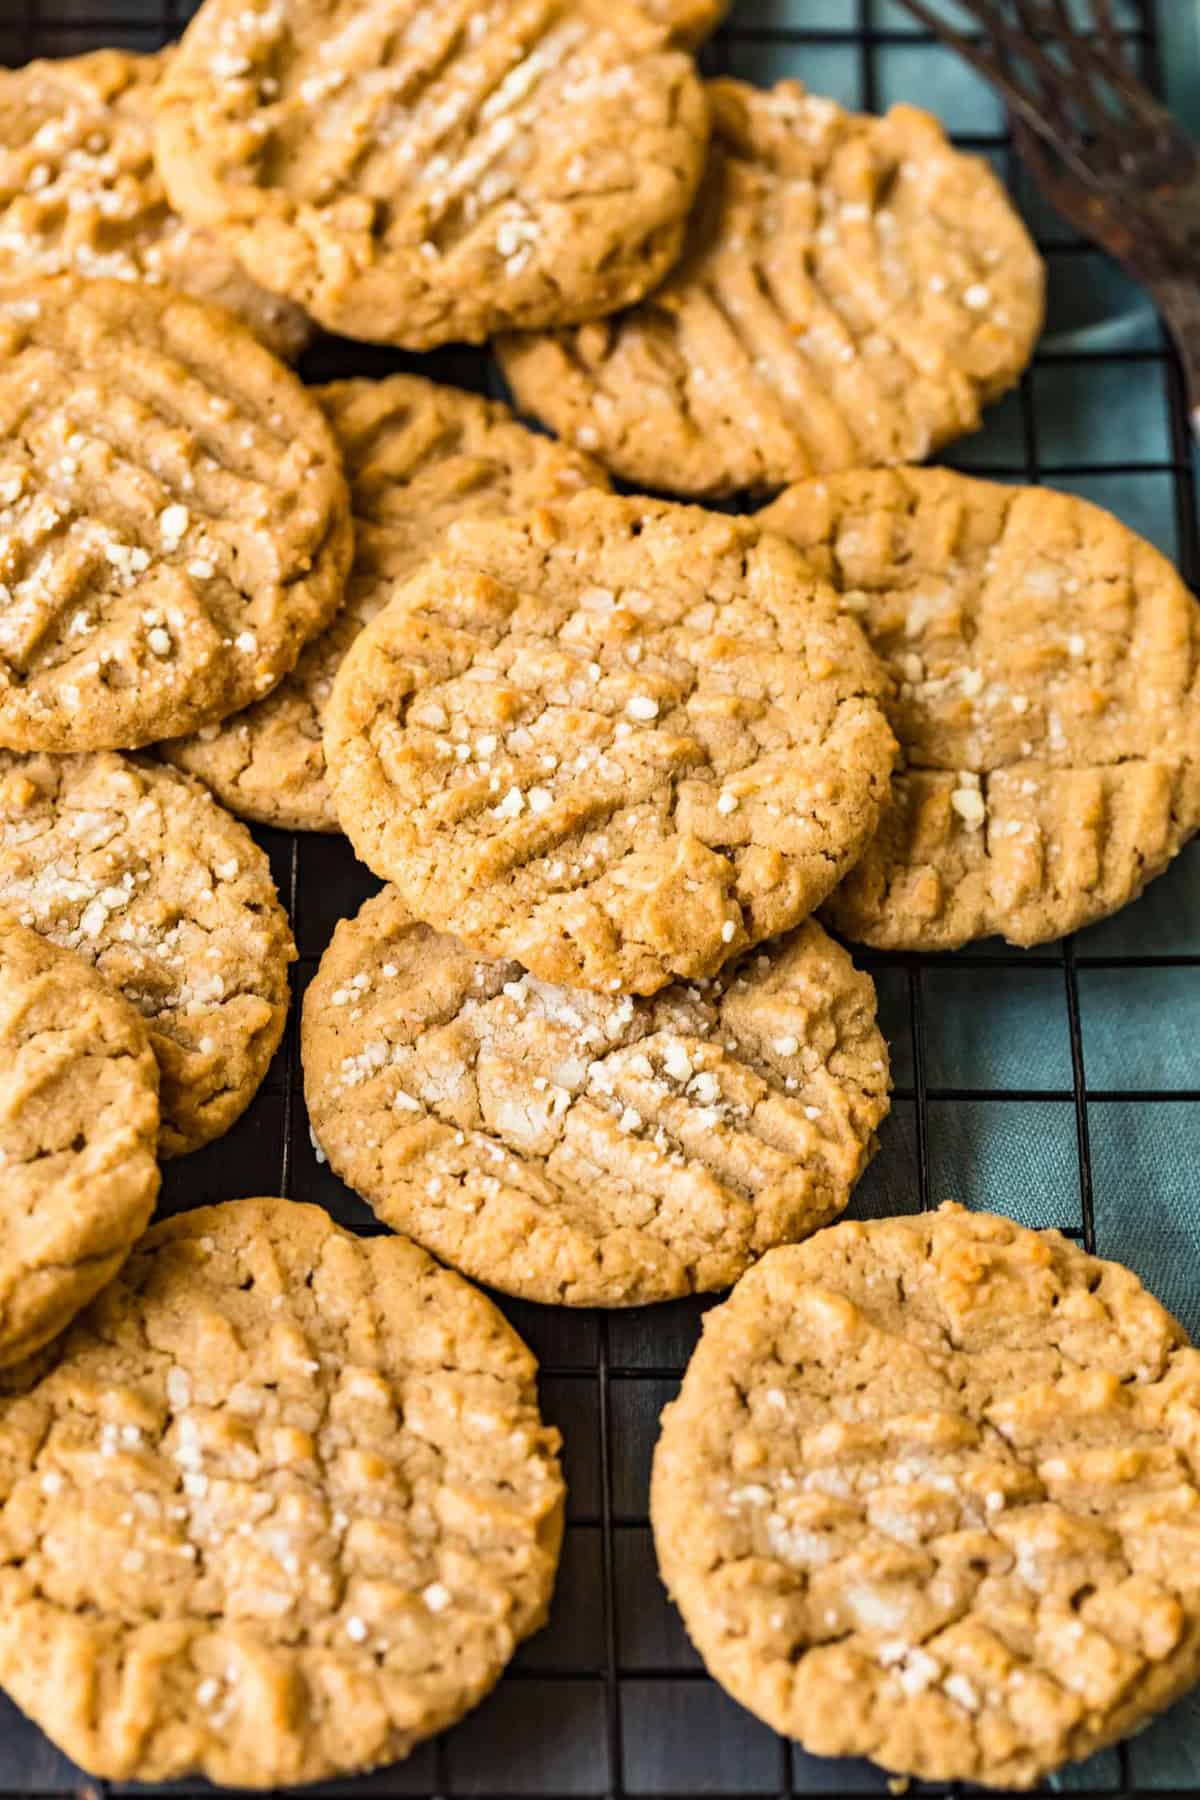 Peanut butter cookies piled on top of each other